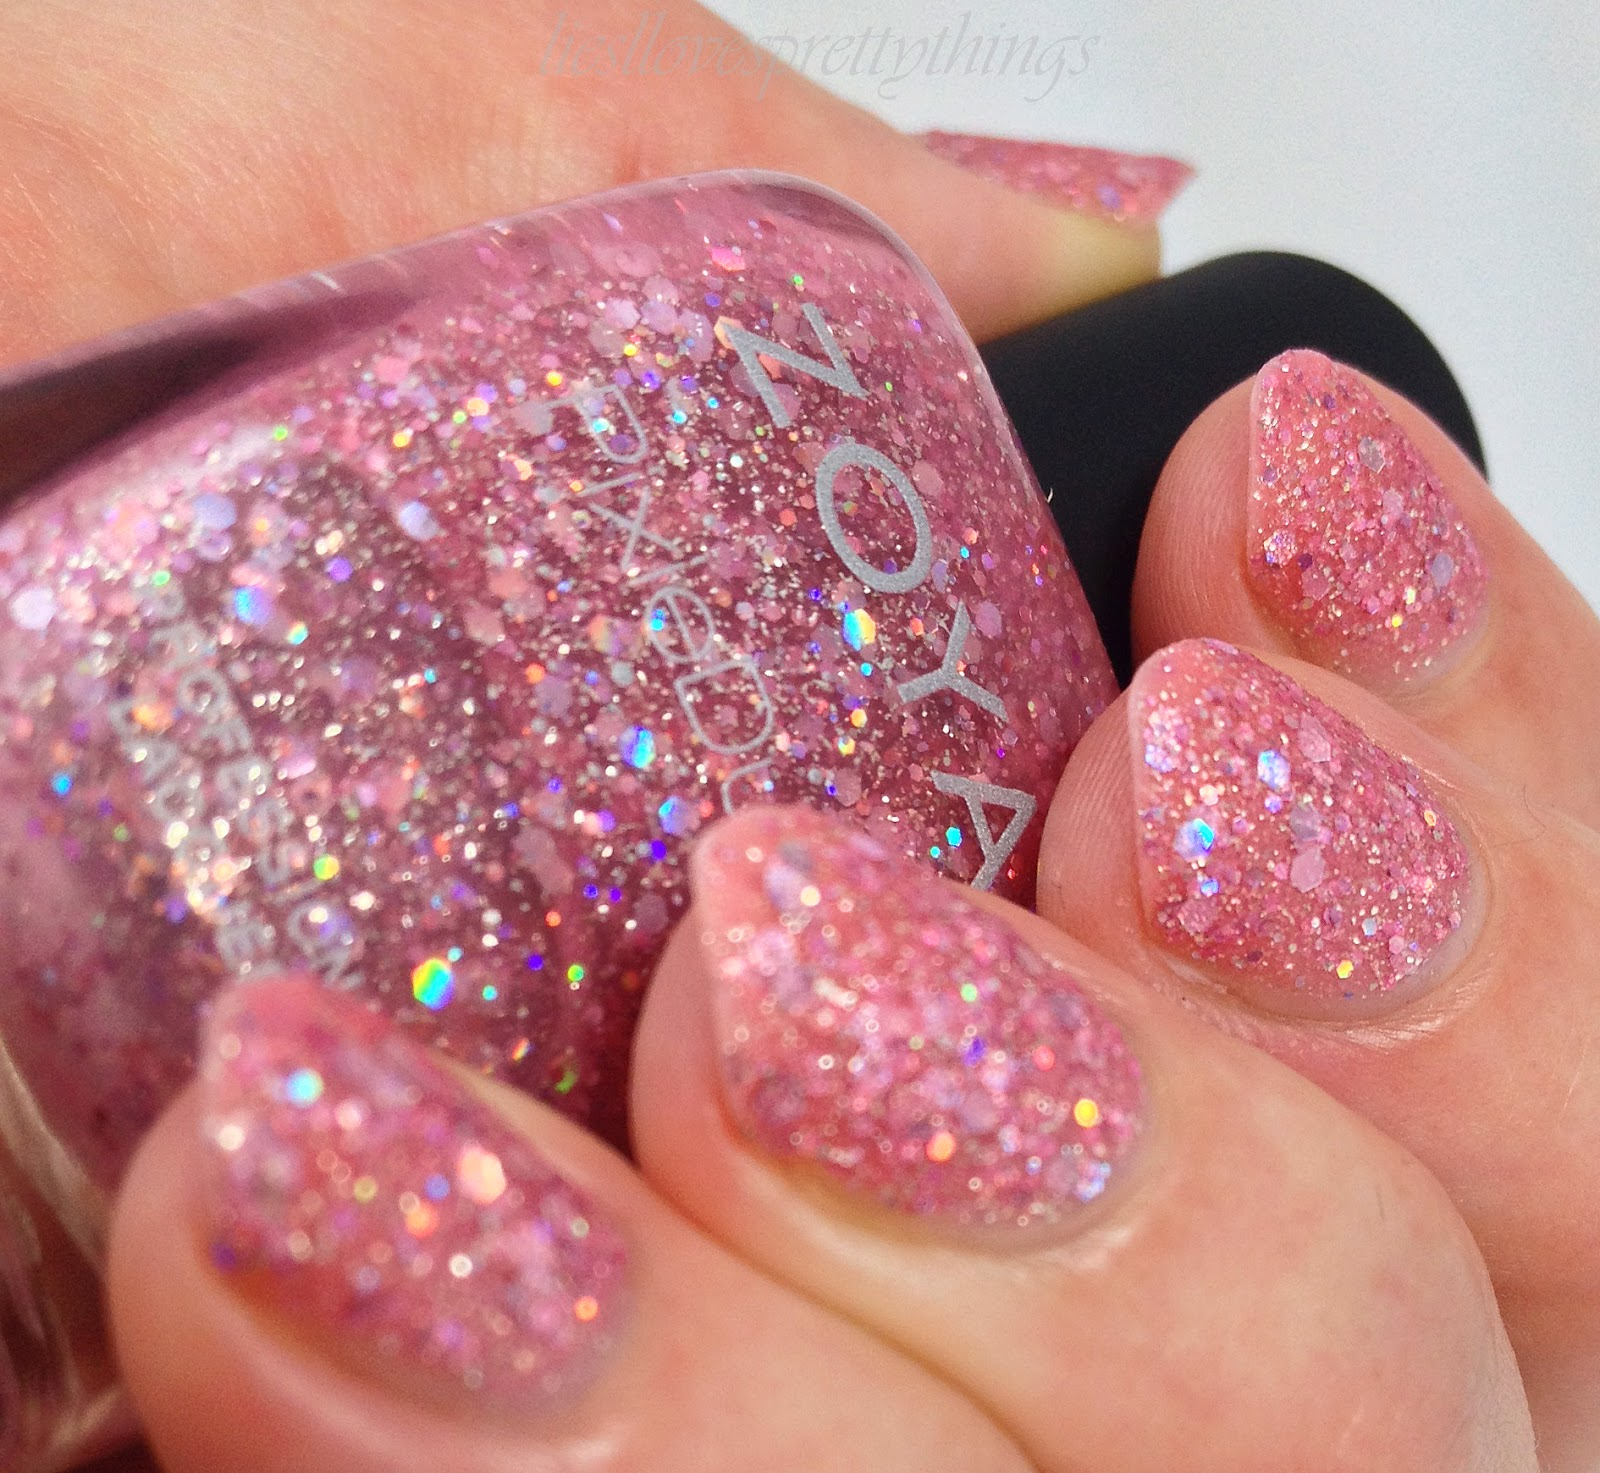 Zoya Magical Pixie Ginni swatch and review